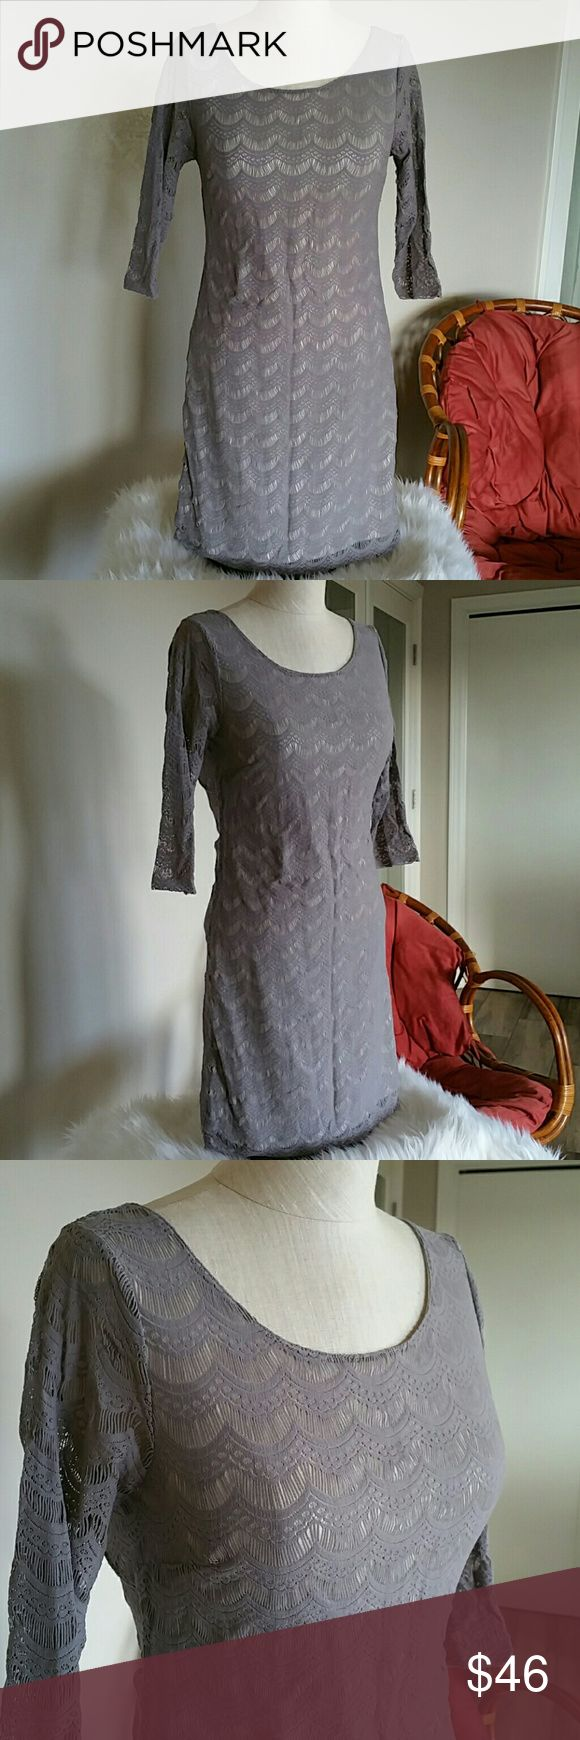 Free People Grey/Silver Bodycon Dress Size small Silver /grey knit Bodycon Open back Perfect for a holiday party🌲 Euc may have been worn once and in like new condition Free People Dresses Mini